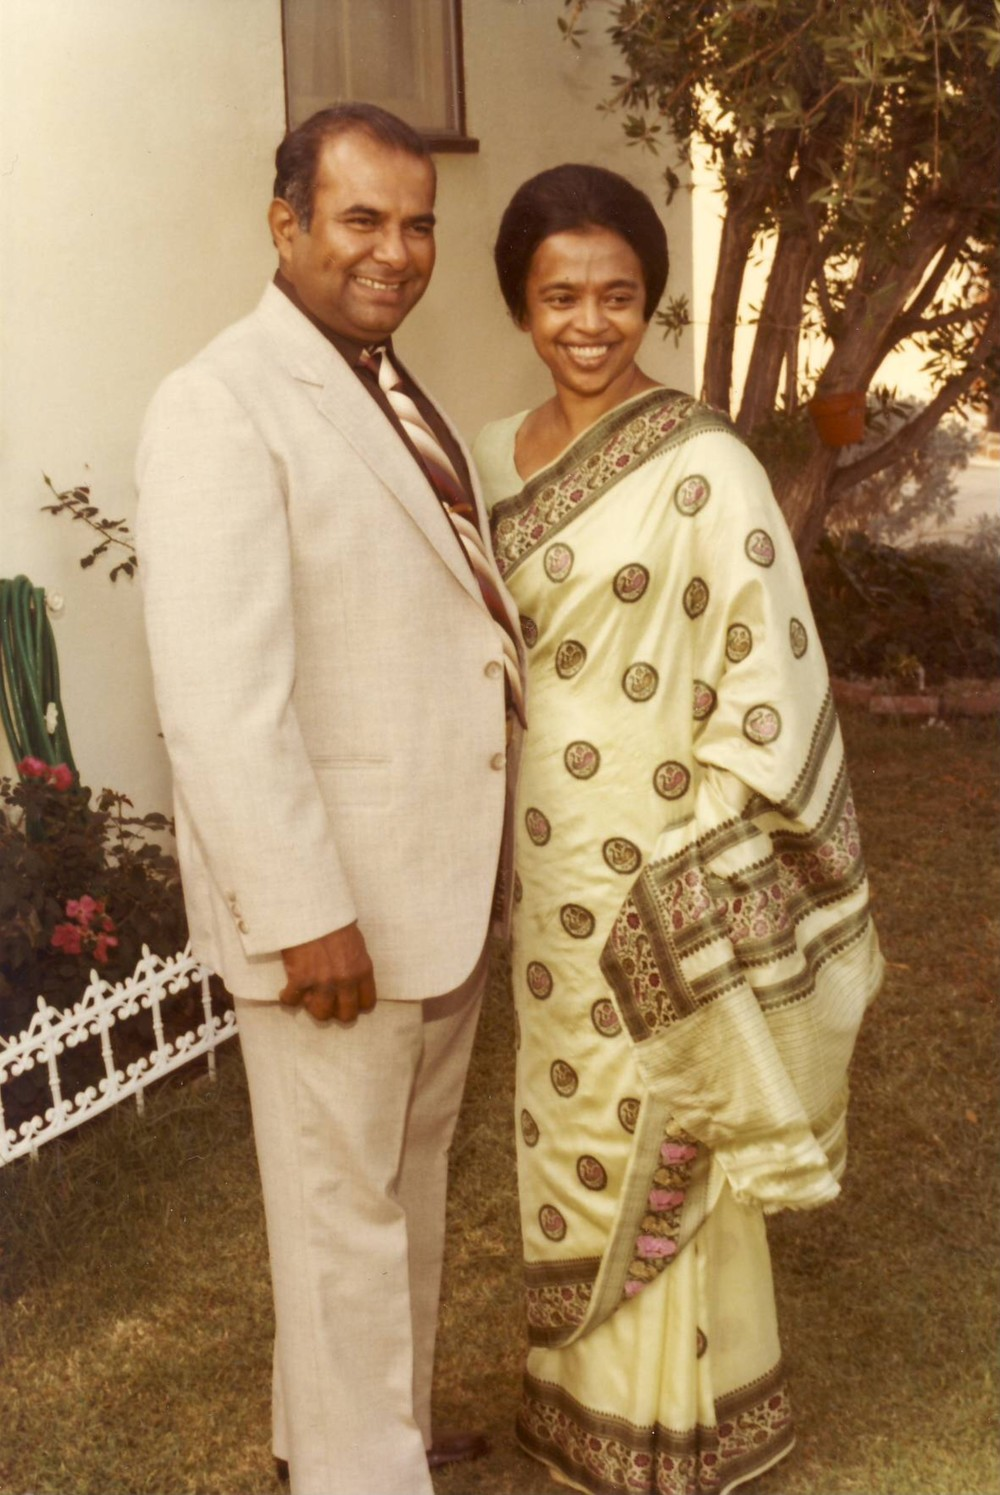 Alex and Indranee at my aunt's wedding (25 years of marriage. Circa 1980)